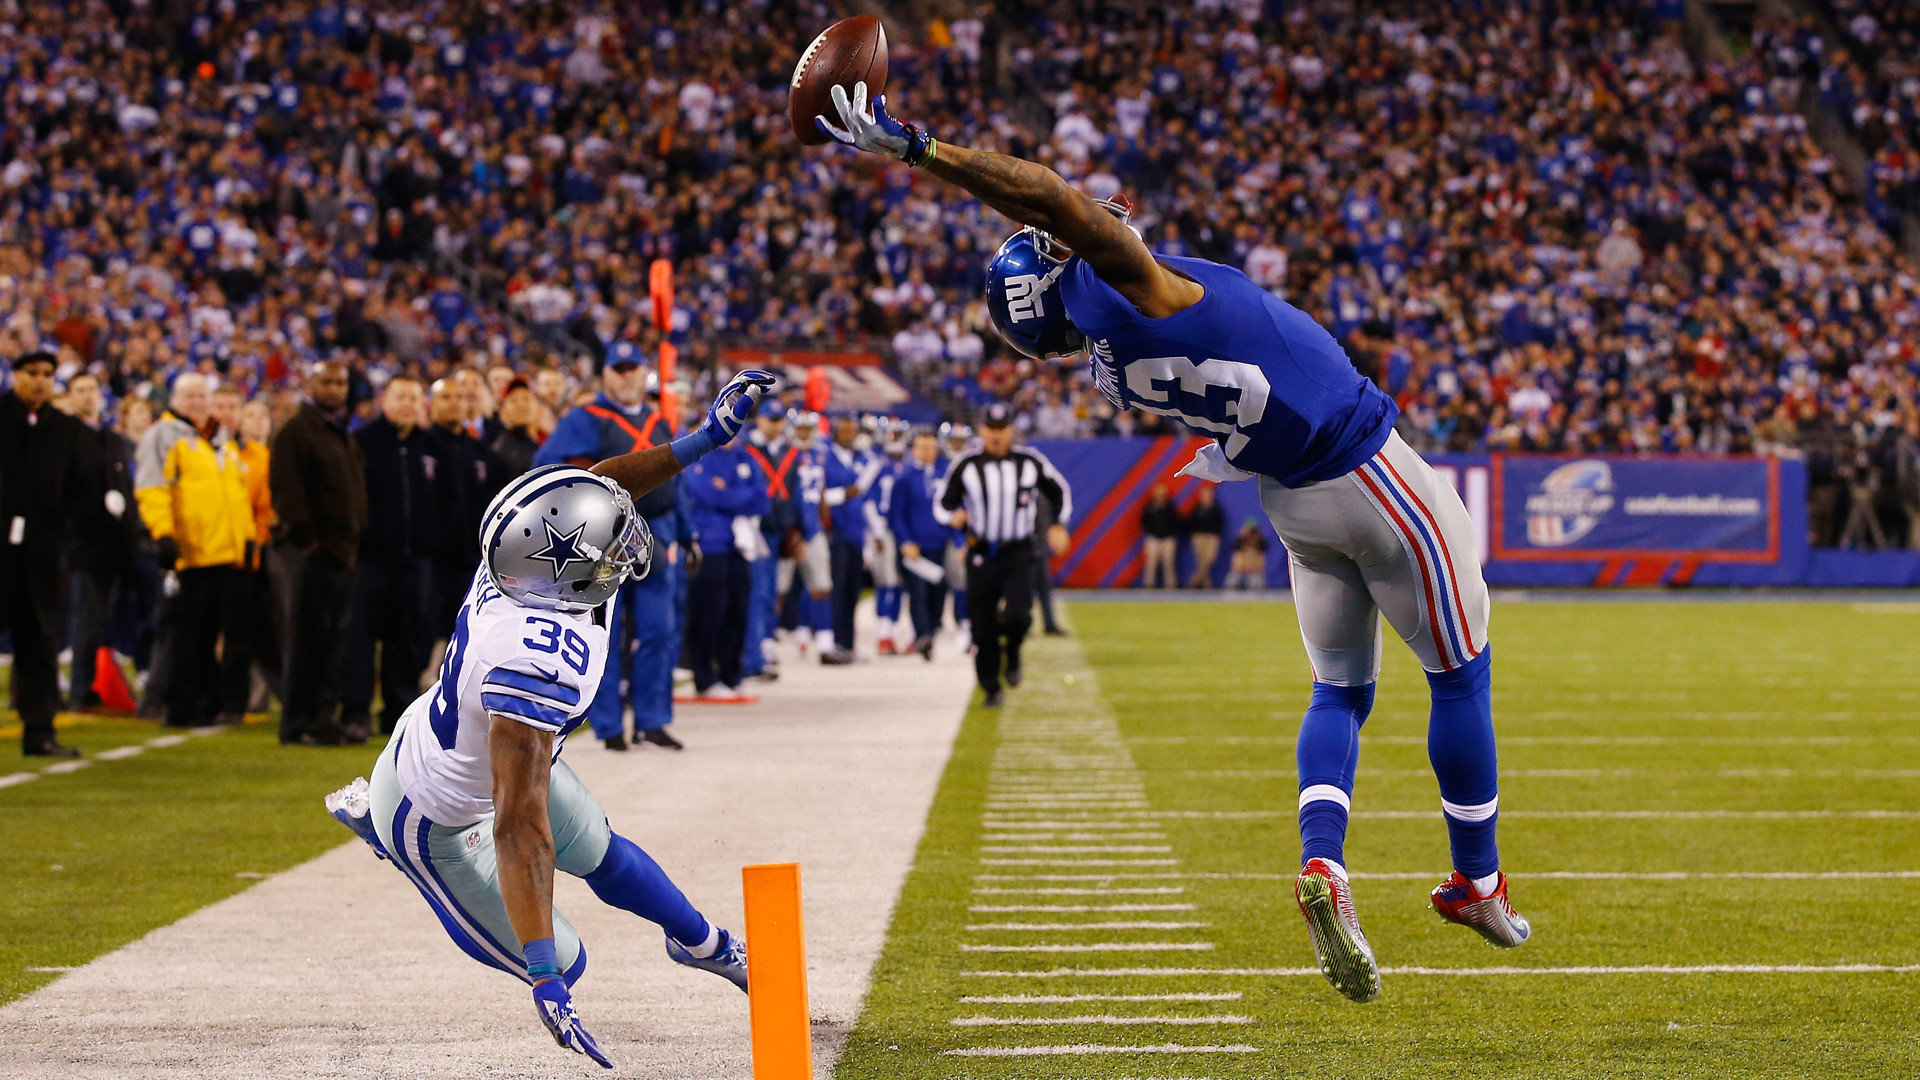 At a Sky Sports Facebook Live event, Odell Beckham Jr described the moment  that made